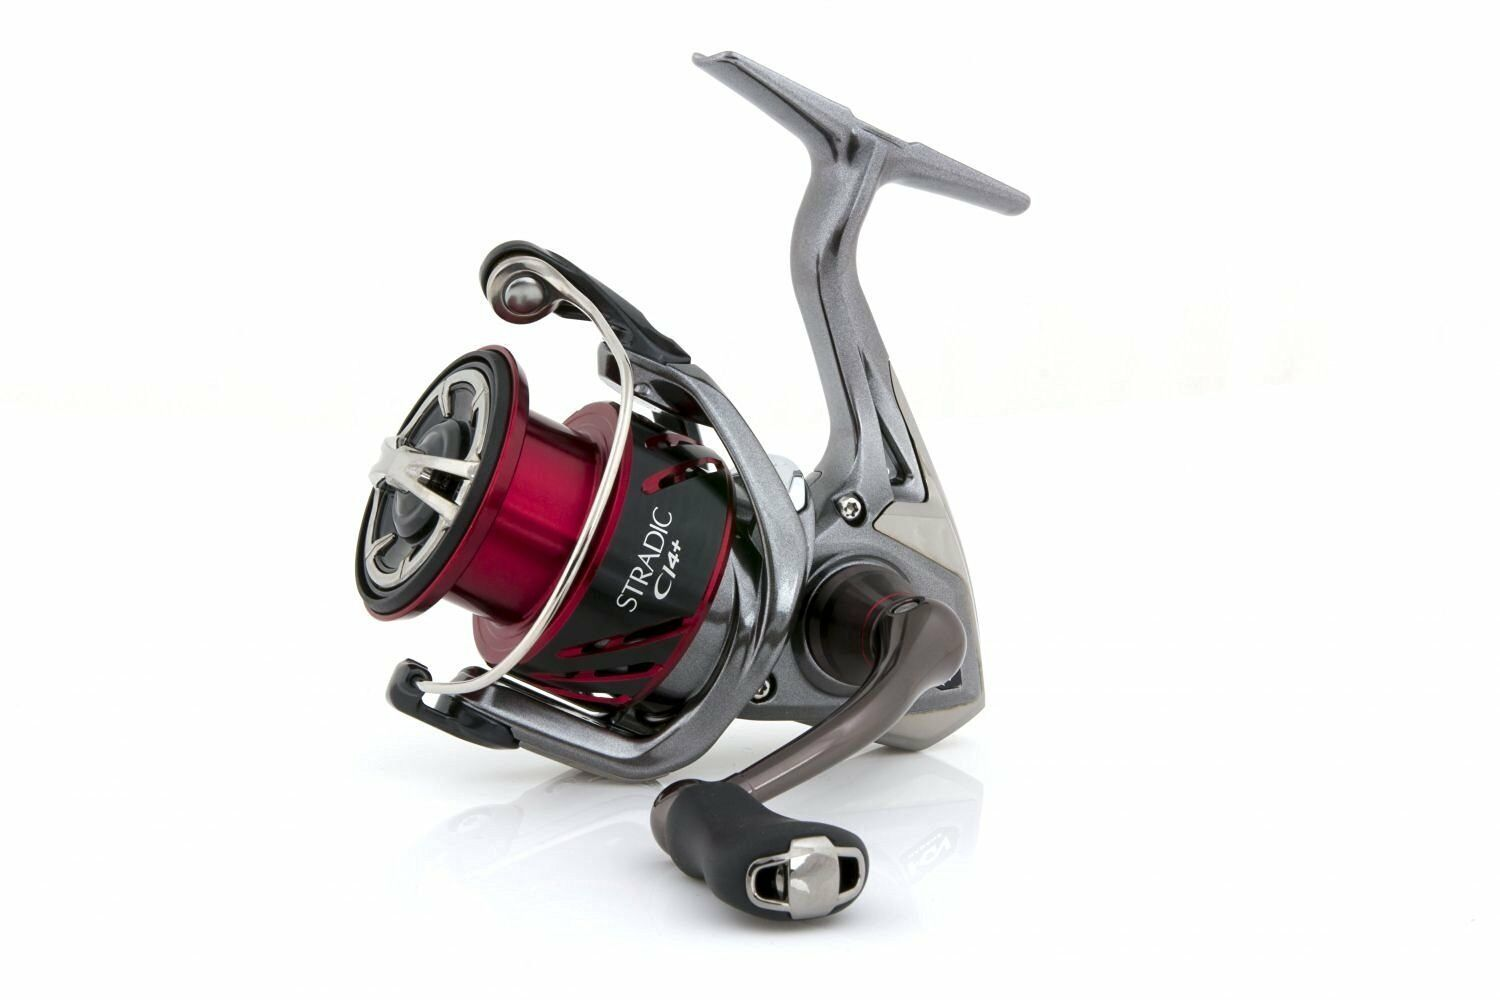 Shimano Stradic CI4+ 2500 FB HG, Spinning Rolle Frontbremse, STCI42500HGFB